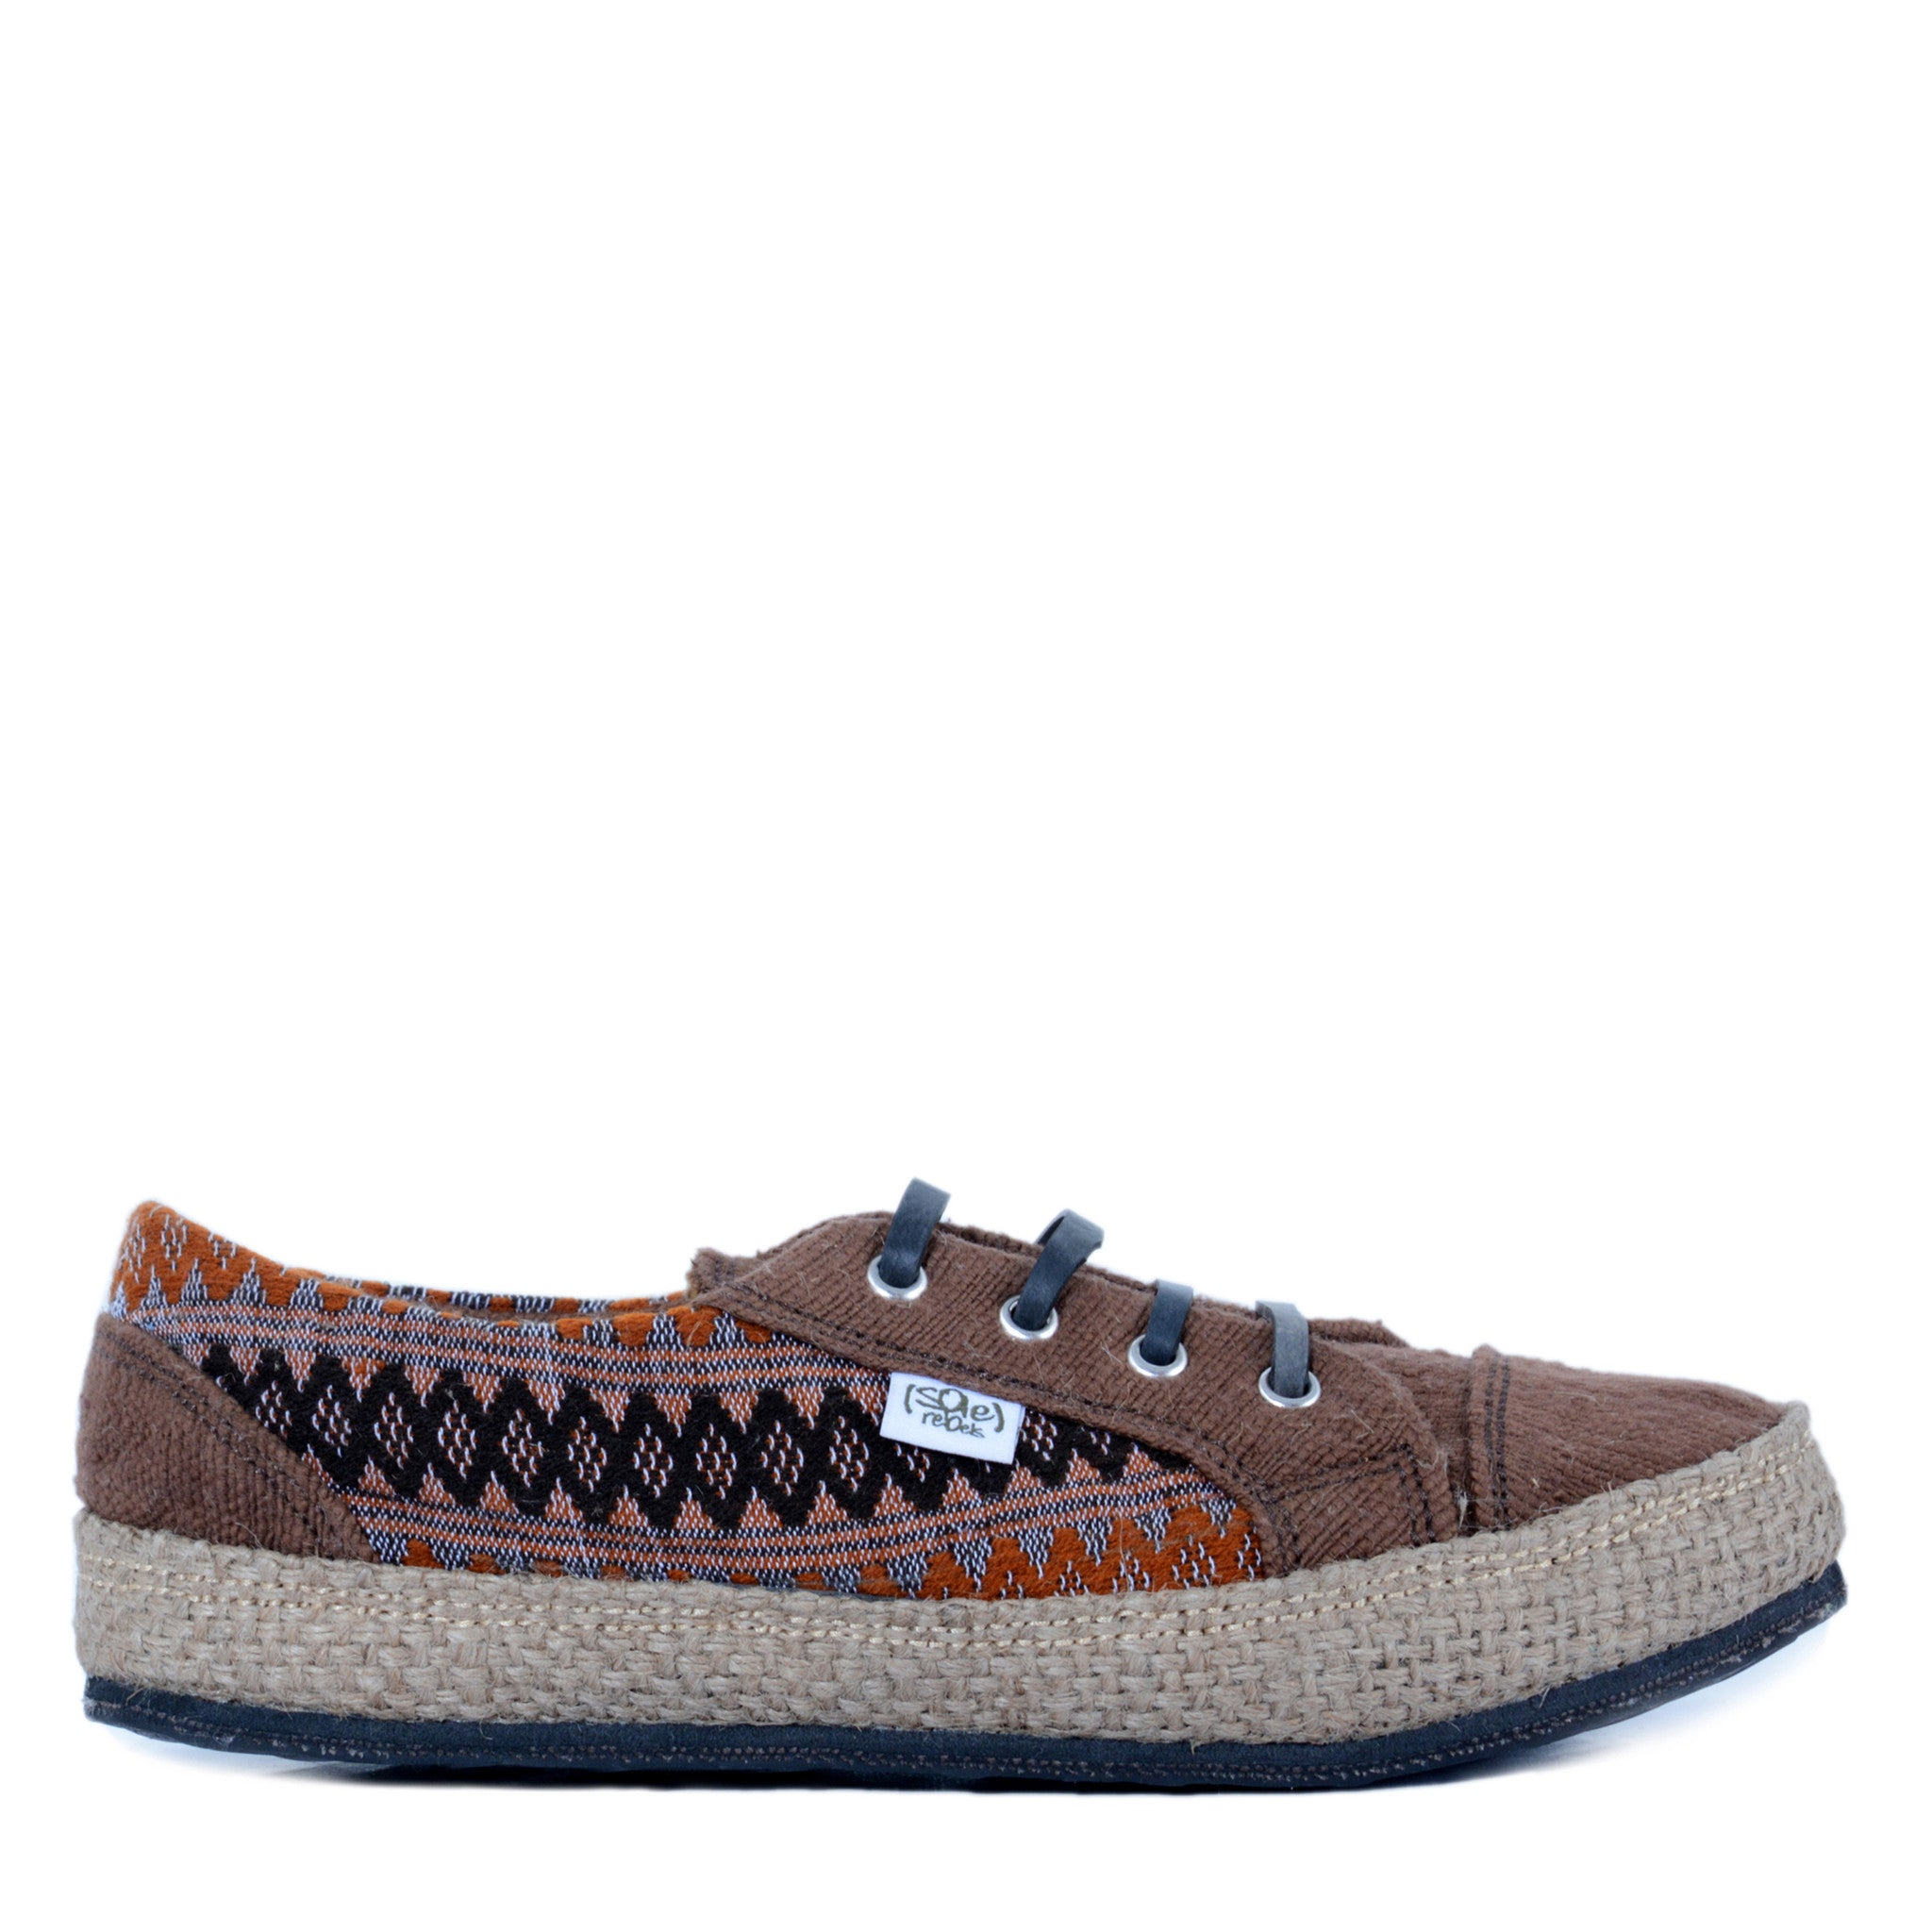 solerebels Brown urban runner kBa Lace-Ups